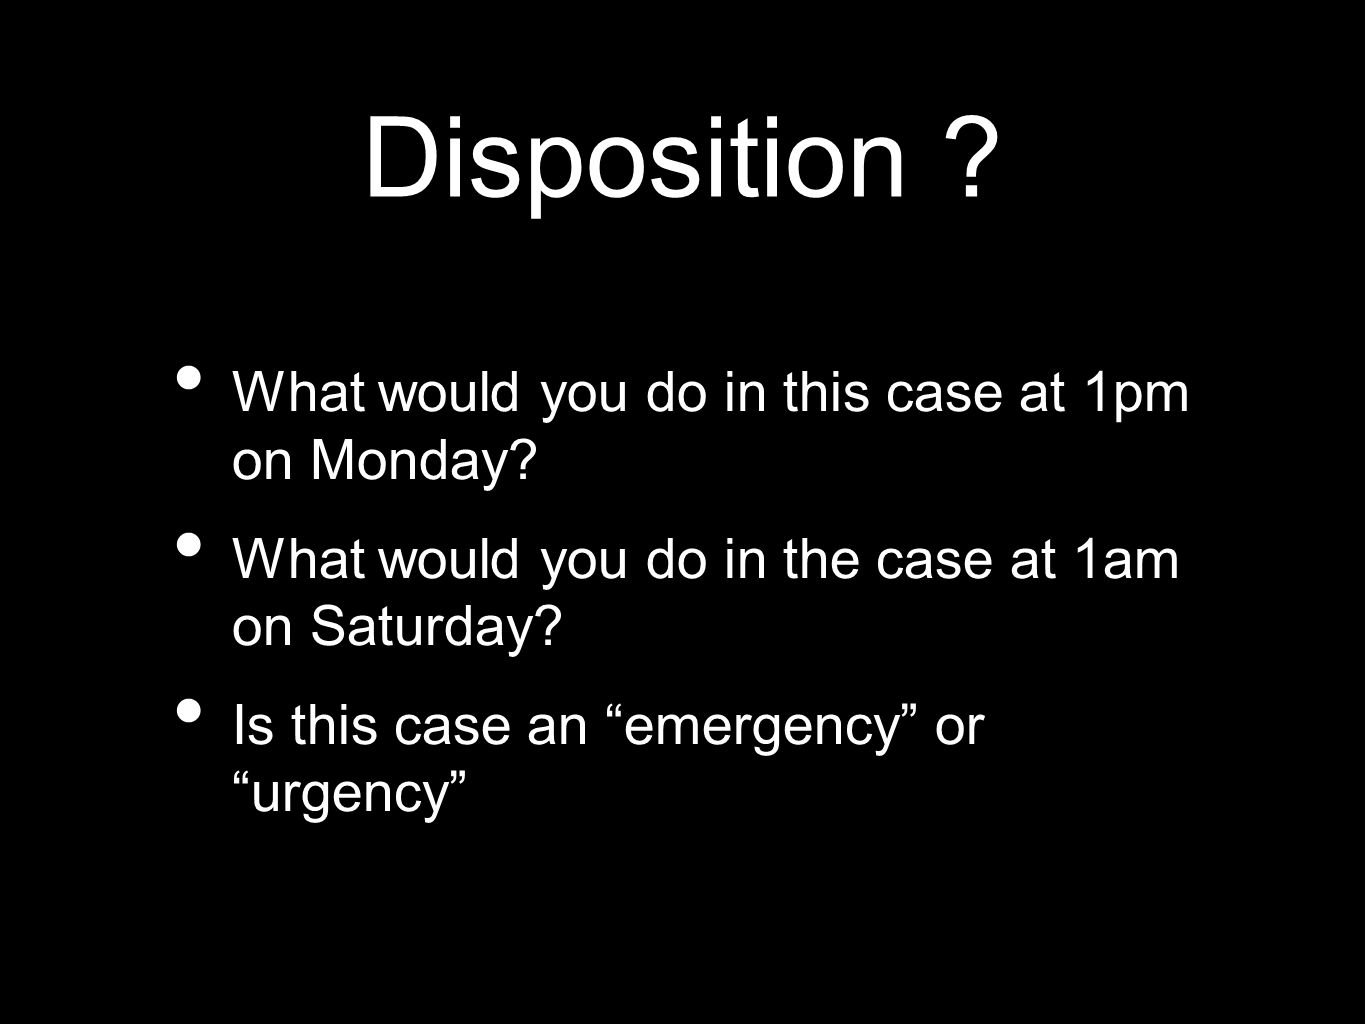 Disposition What would you do in this case at 1pm on Monday